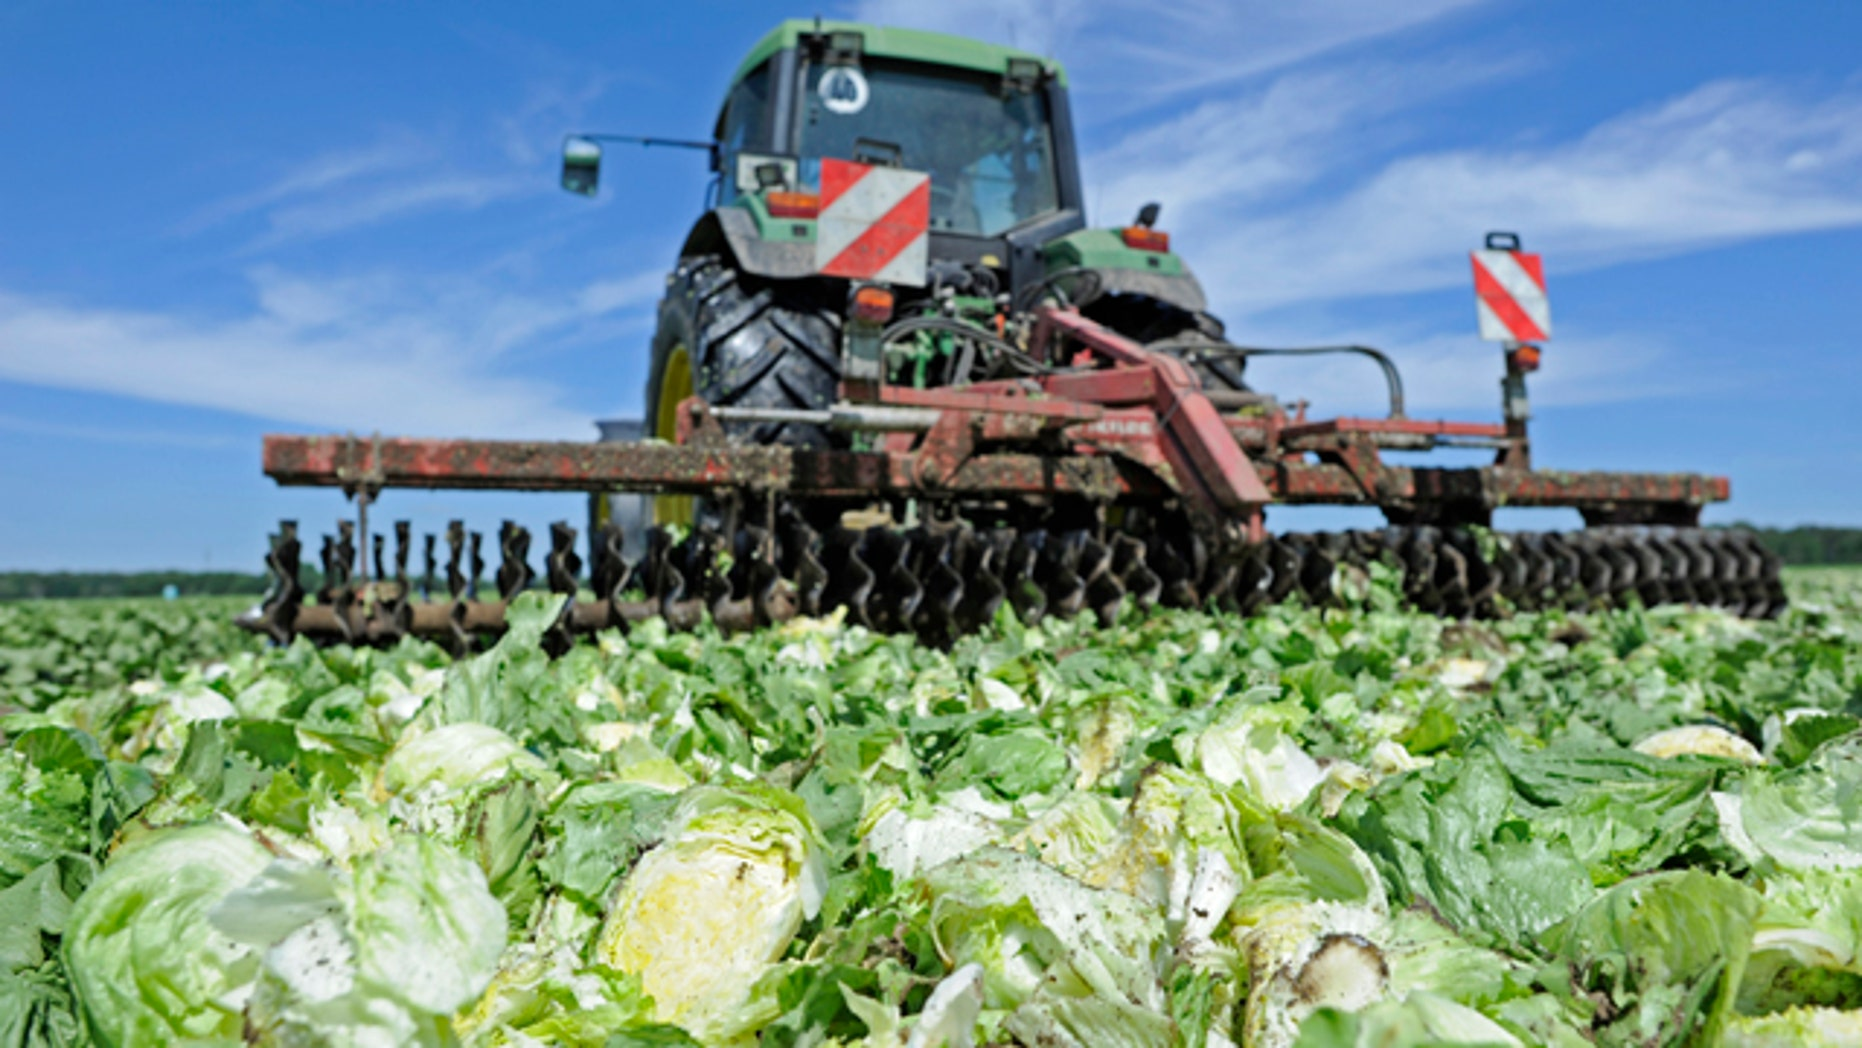 Lettuces are destroyed by a tractor in a field near Hamburg June 1, 2011.